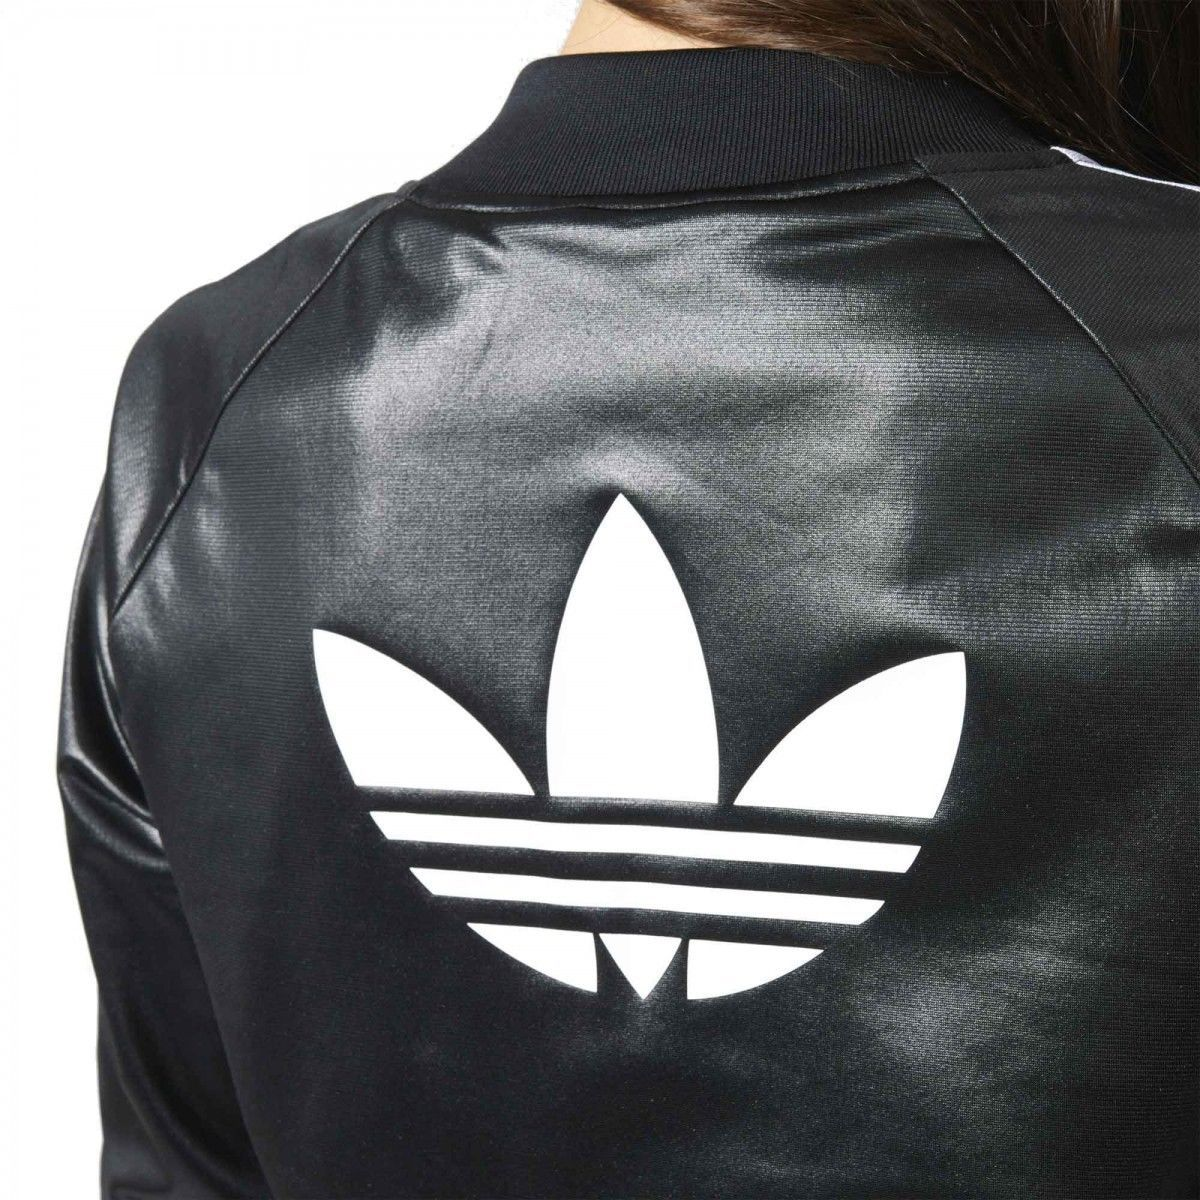 6110eedfe325b Supergirl Jacket AY7892. adidas Originals. A true classic. It flashes a big  Trefoil on the back. The modern fit hugs curves for a stylish update to the  ...